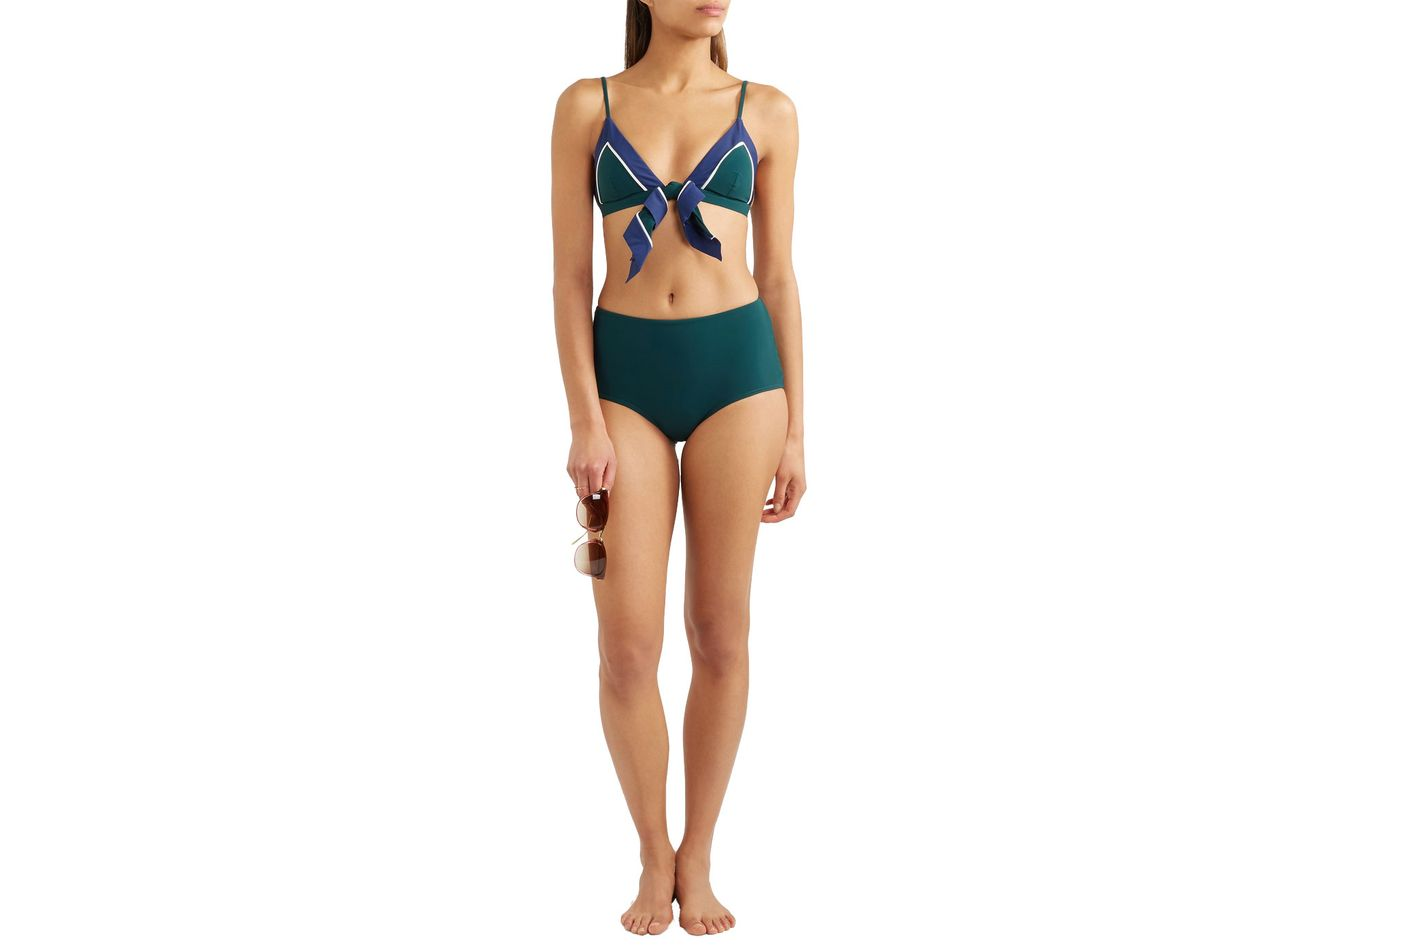 d5b57f8d289aa 21 Cute High-Waisted Bikinis to Wear This Summer